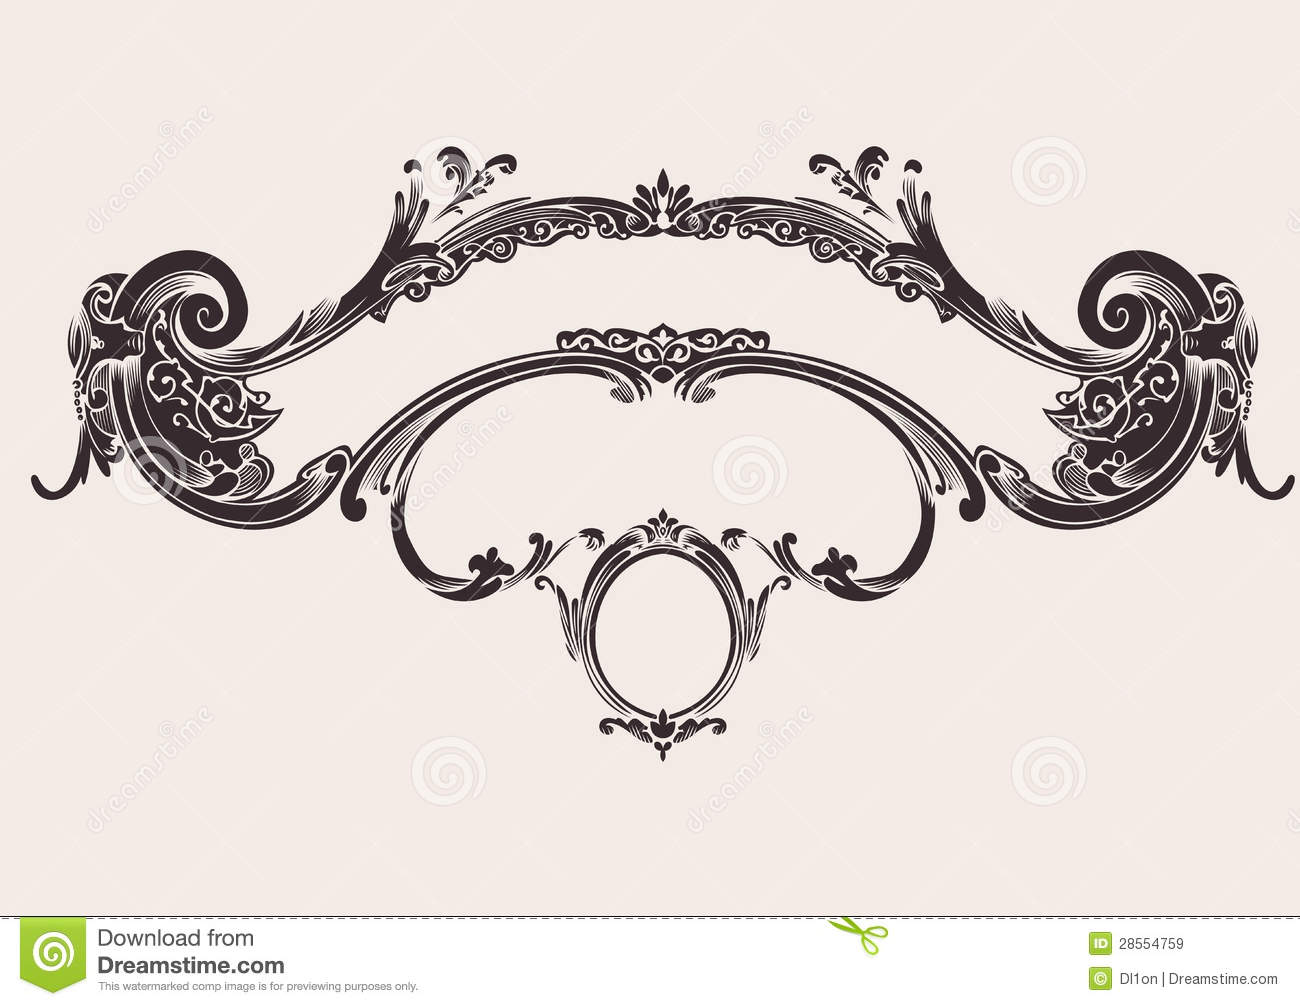 Royal Vintage Curves Banner Royalty Free Stock Images